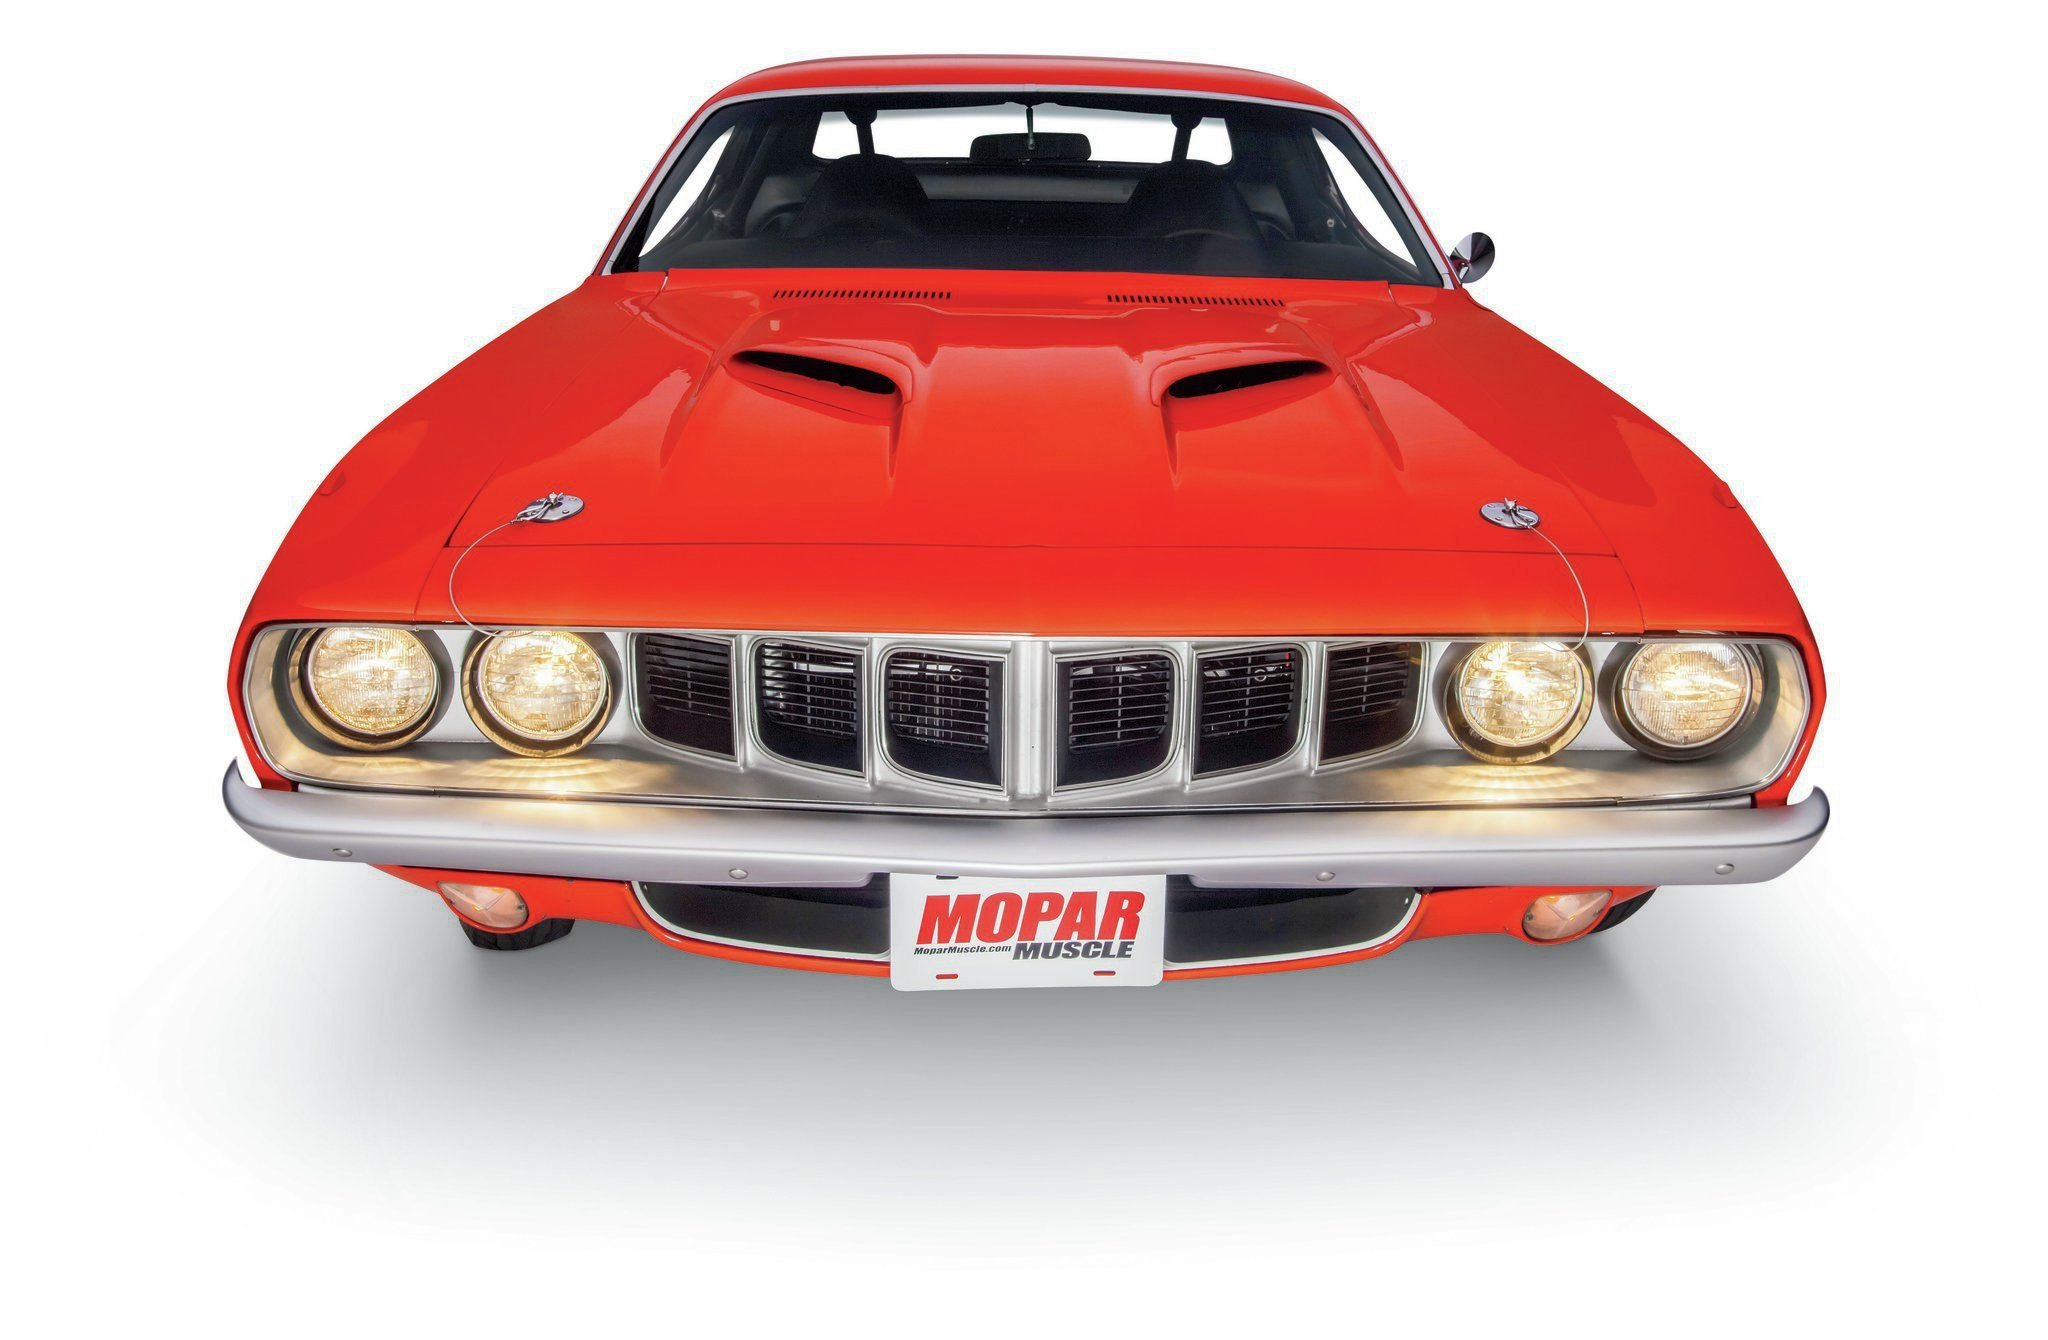 1971 Plymouth Barracuda-02 wallpaper